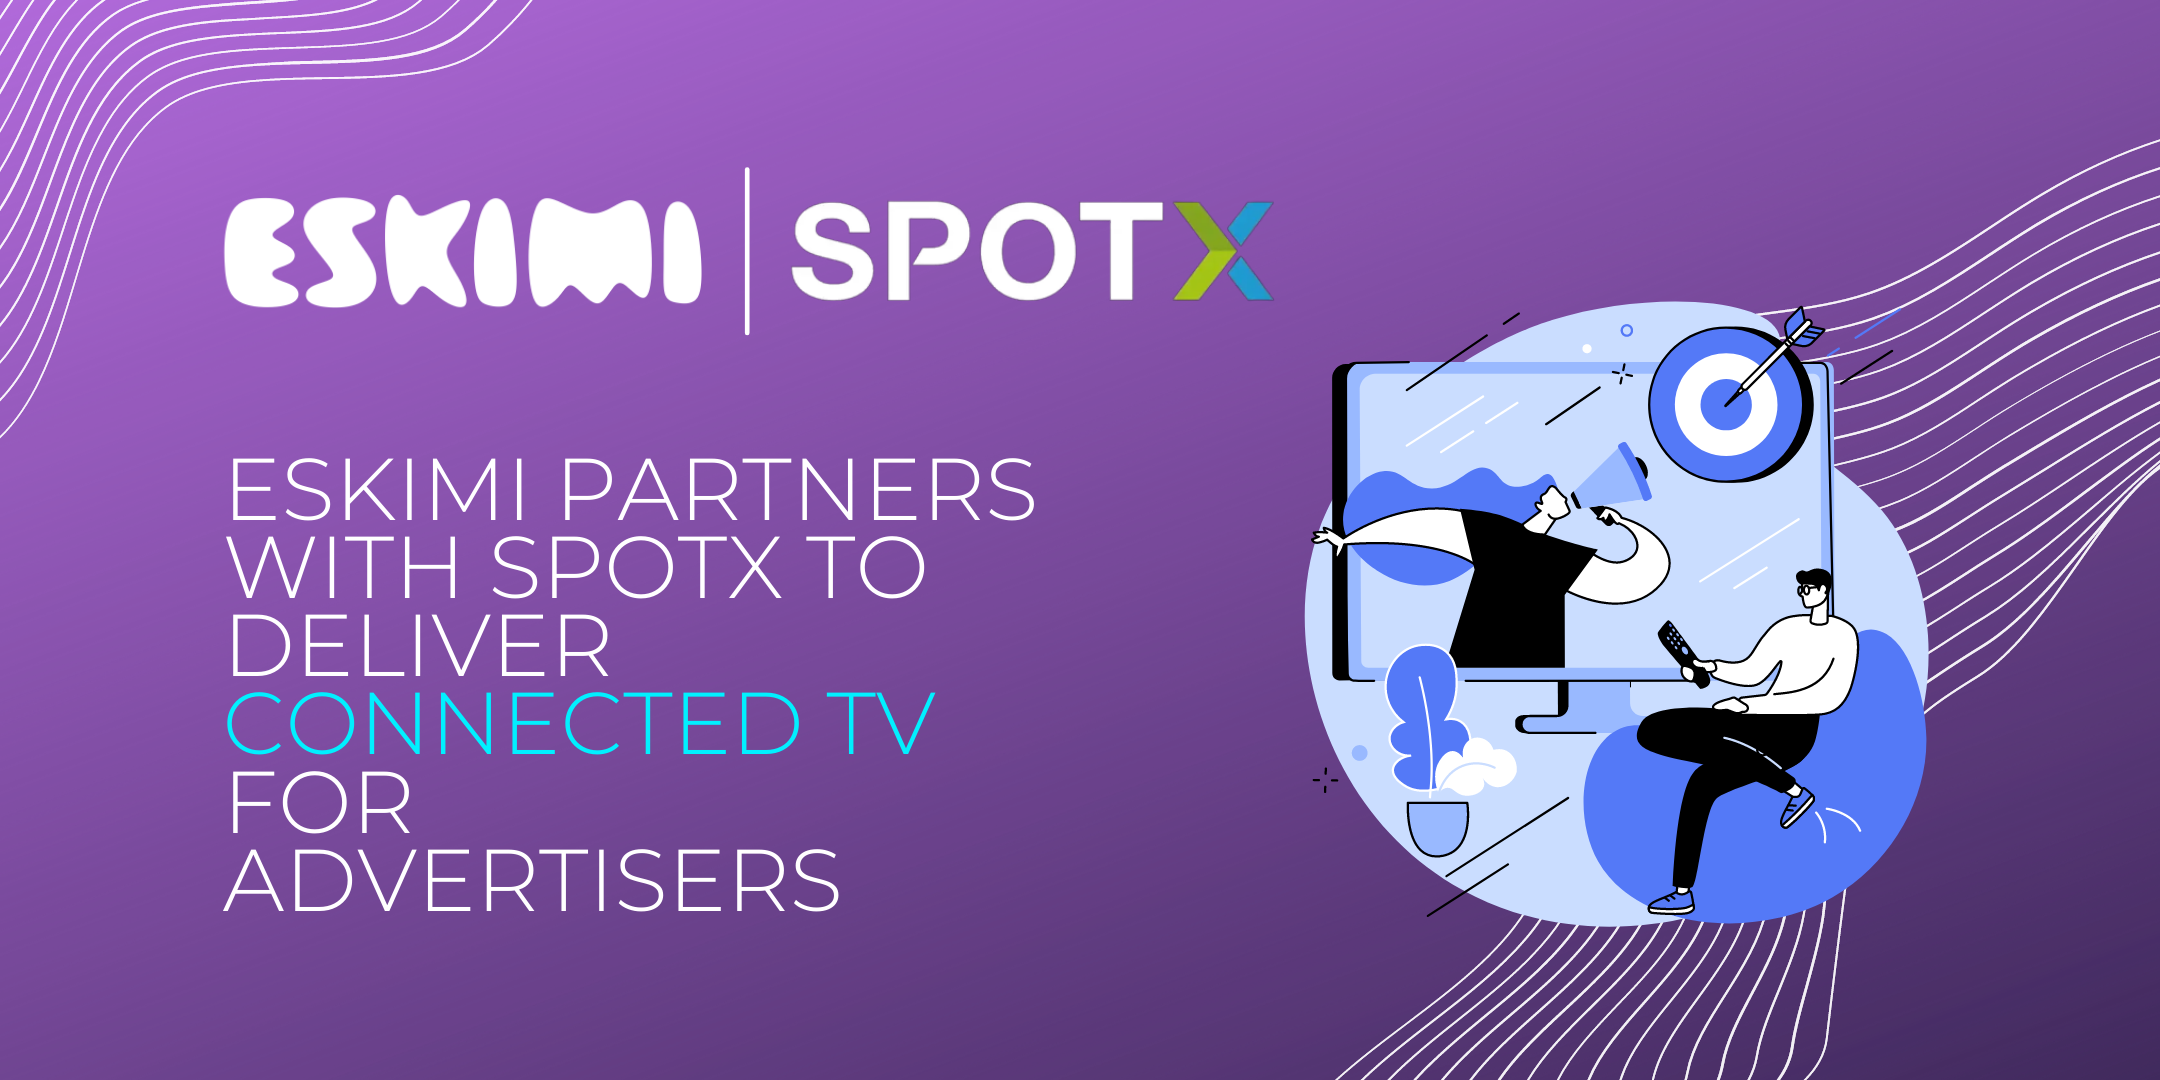 Eskimi Partners with SpotX to Deliver Connected TV for Advertisers